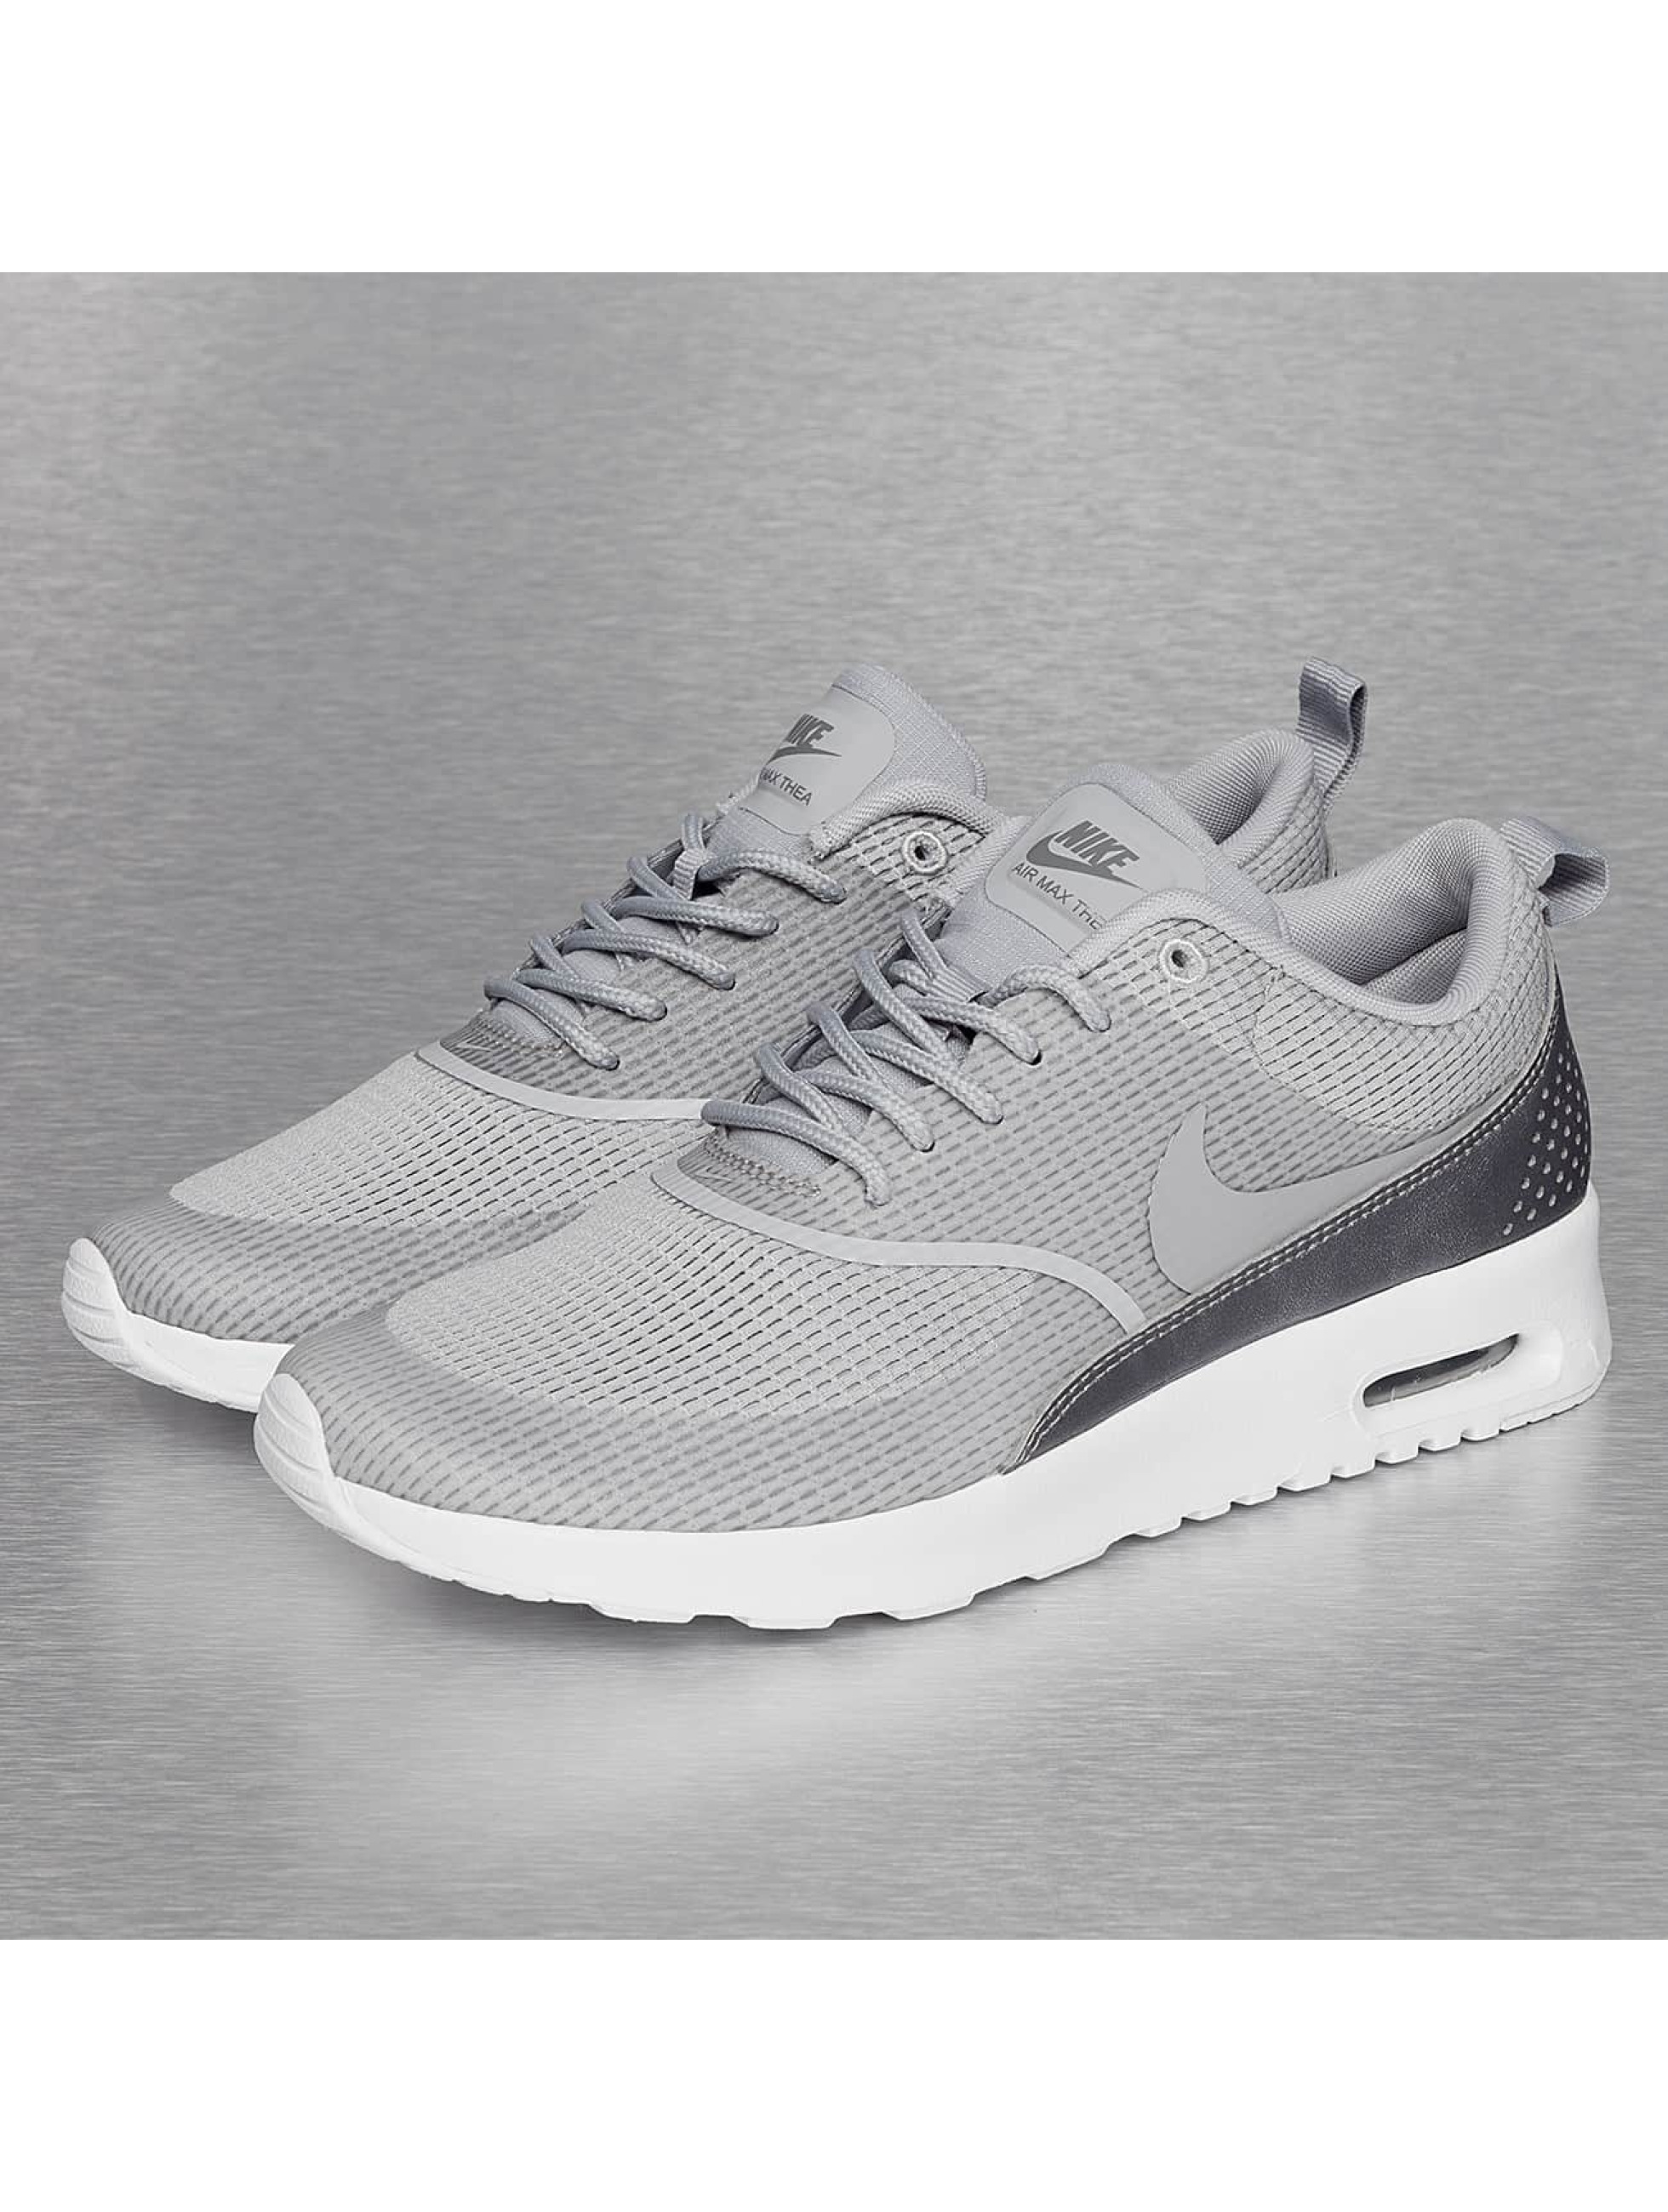 nike sneaker air max thea in grau 241587. Black Bedroom Furniture Sets. Home Design Ideas